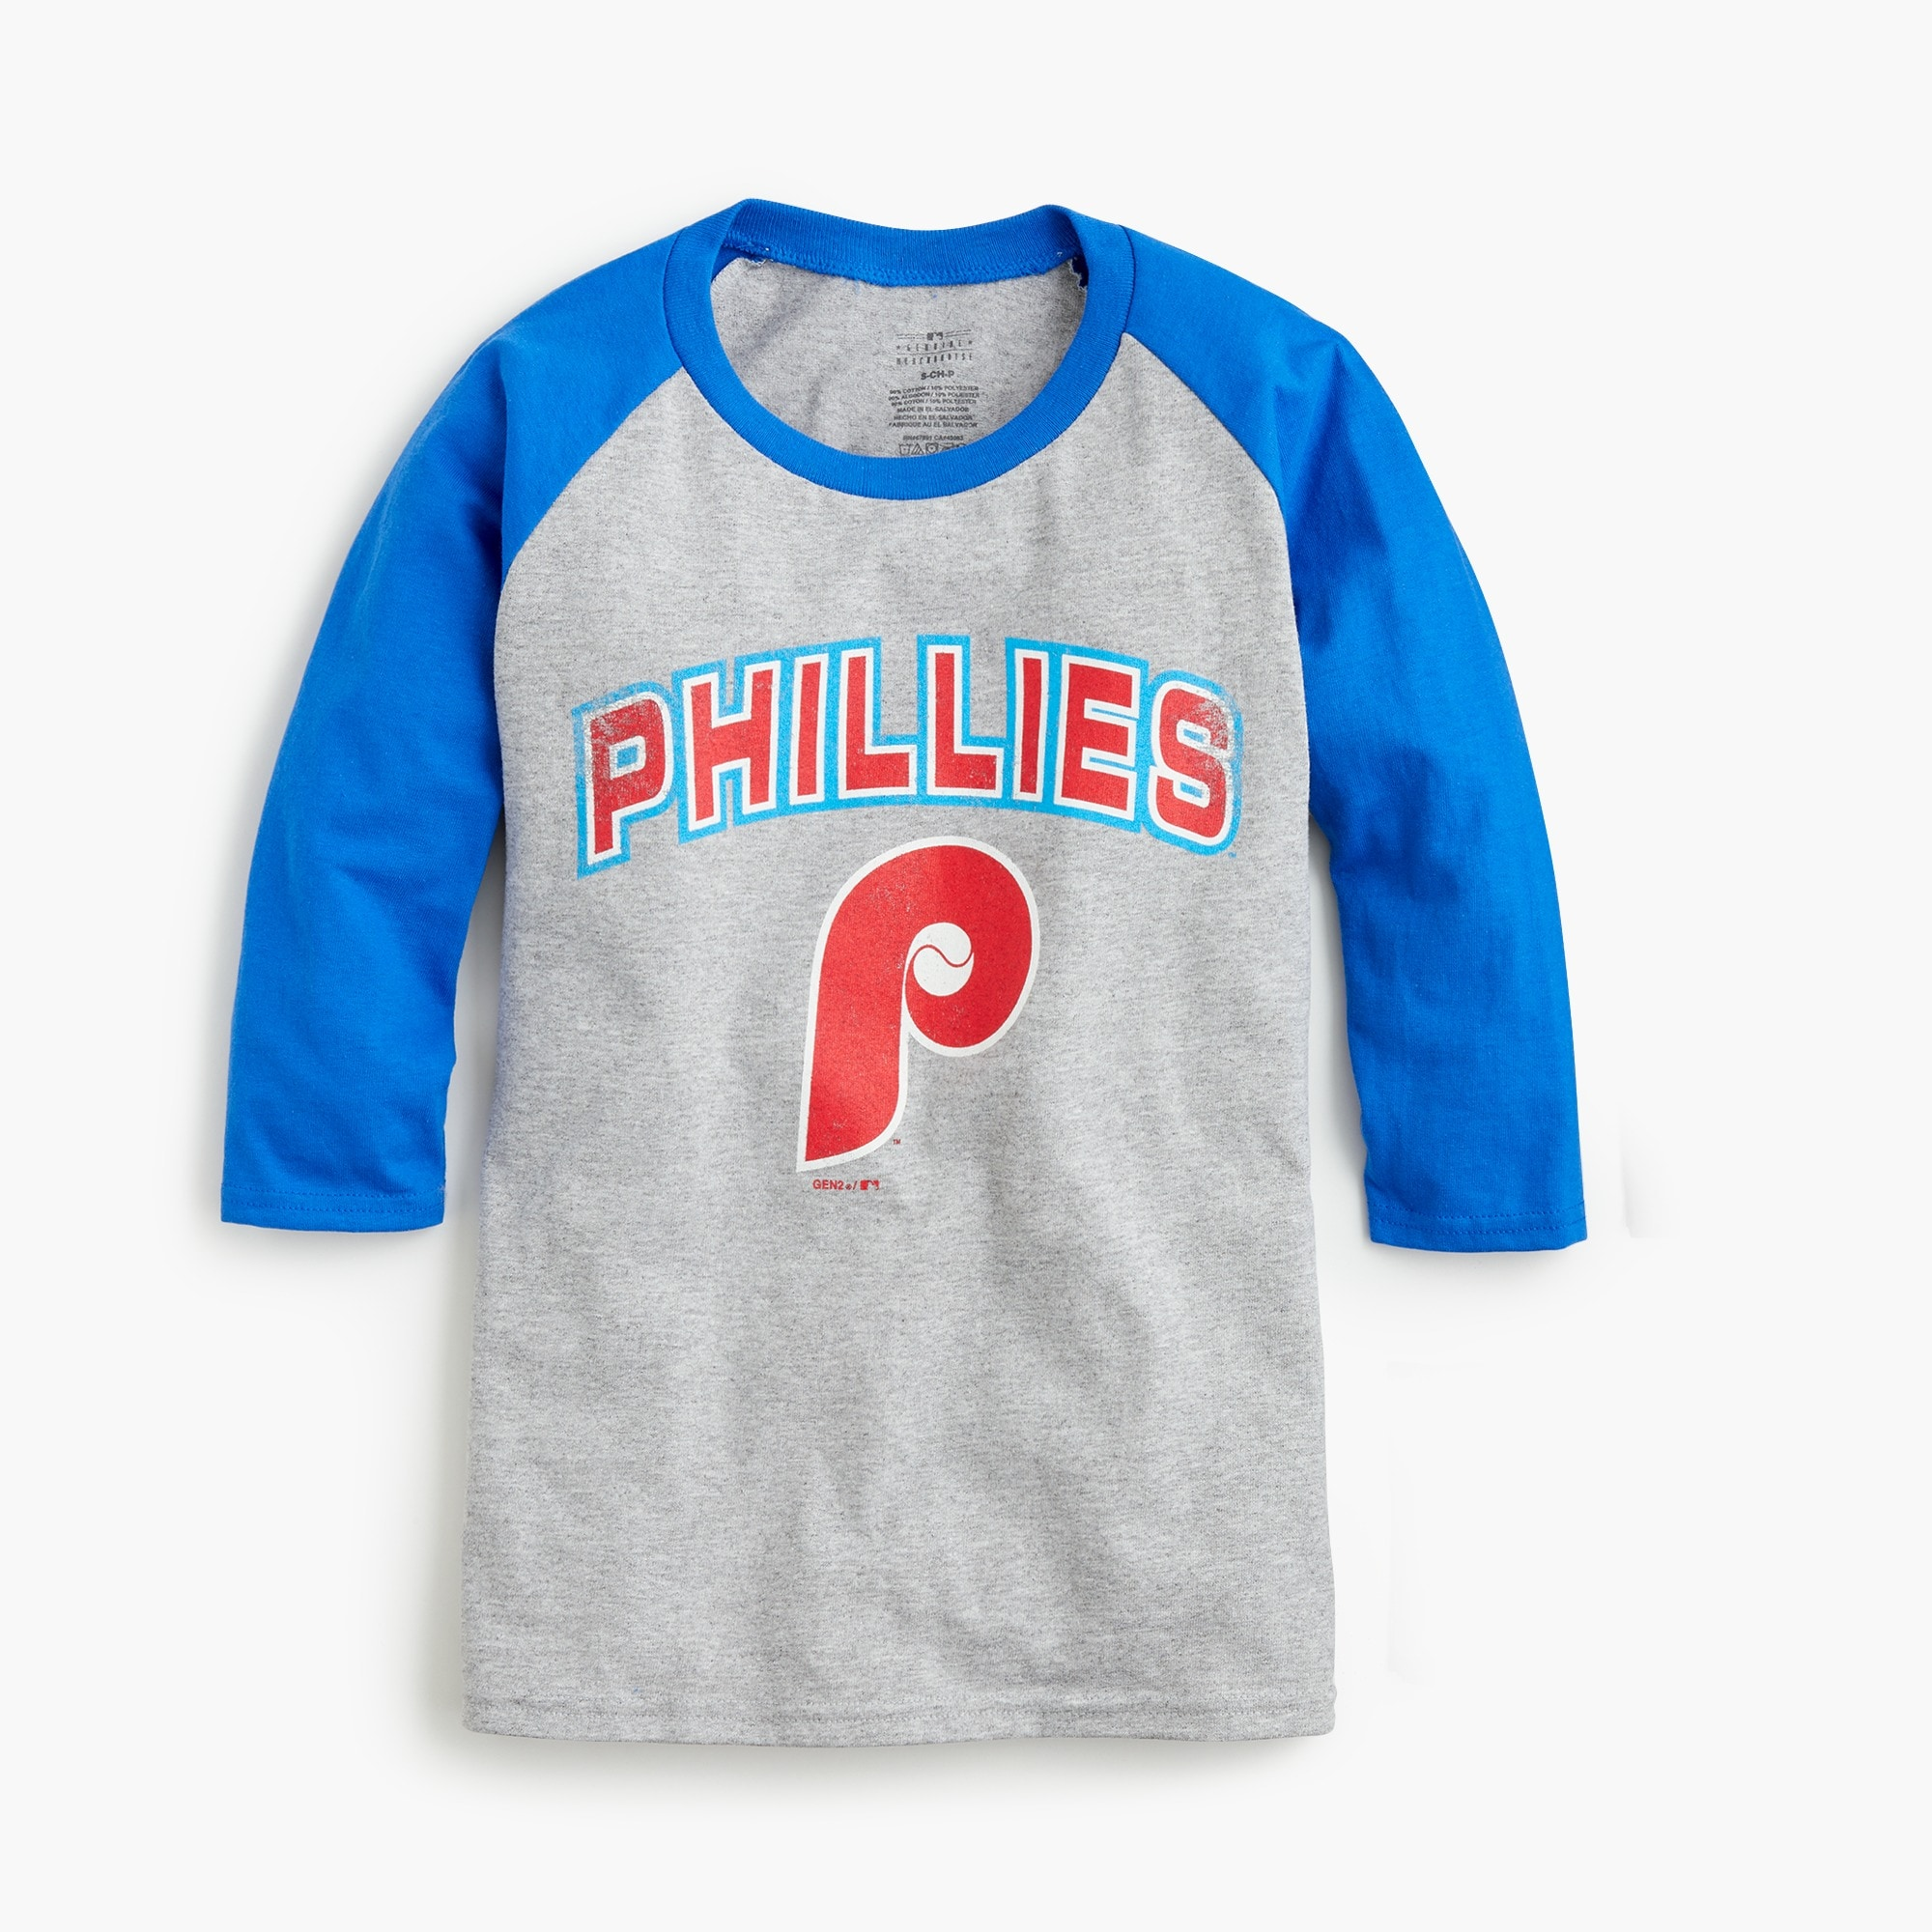 Kids' Philadelphia Phillies baseball T-shirt boy graphics shop c